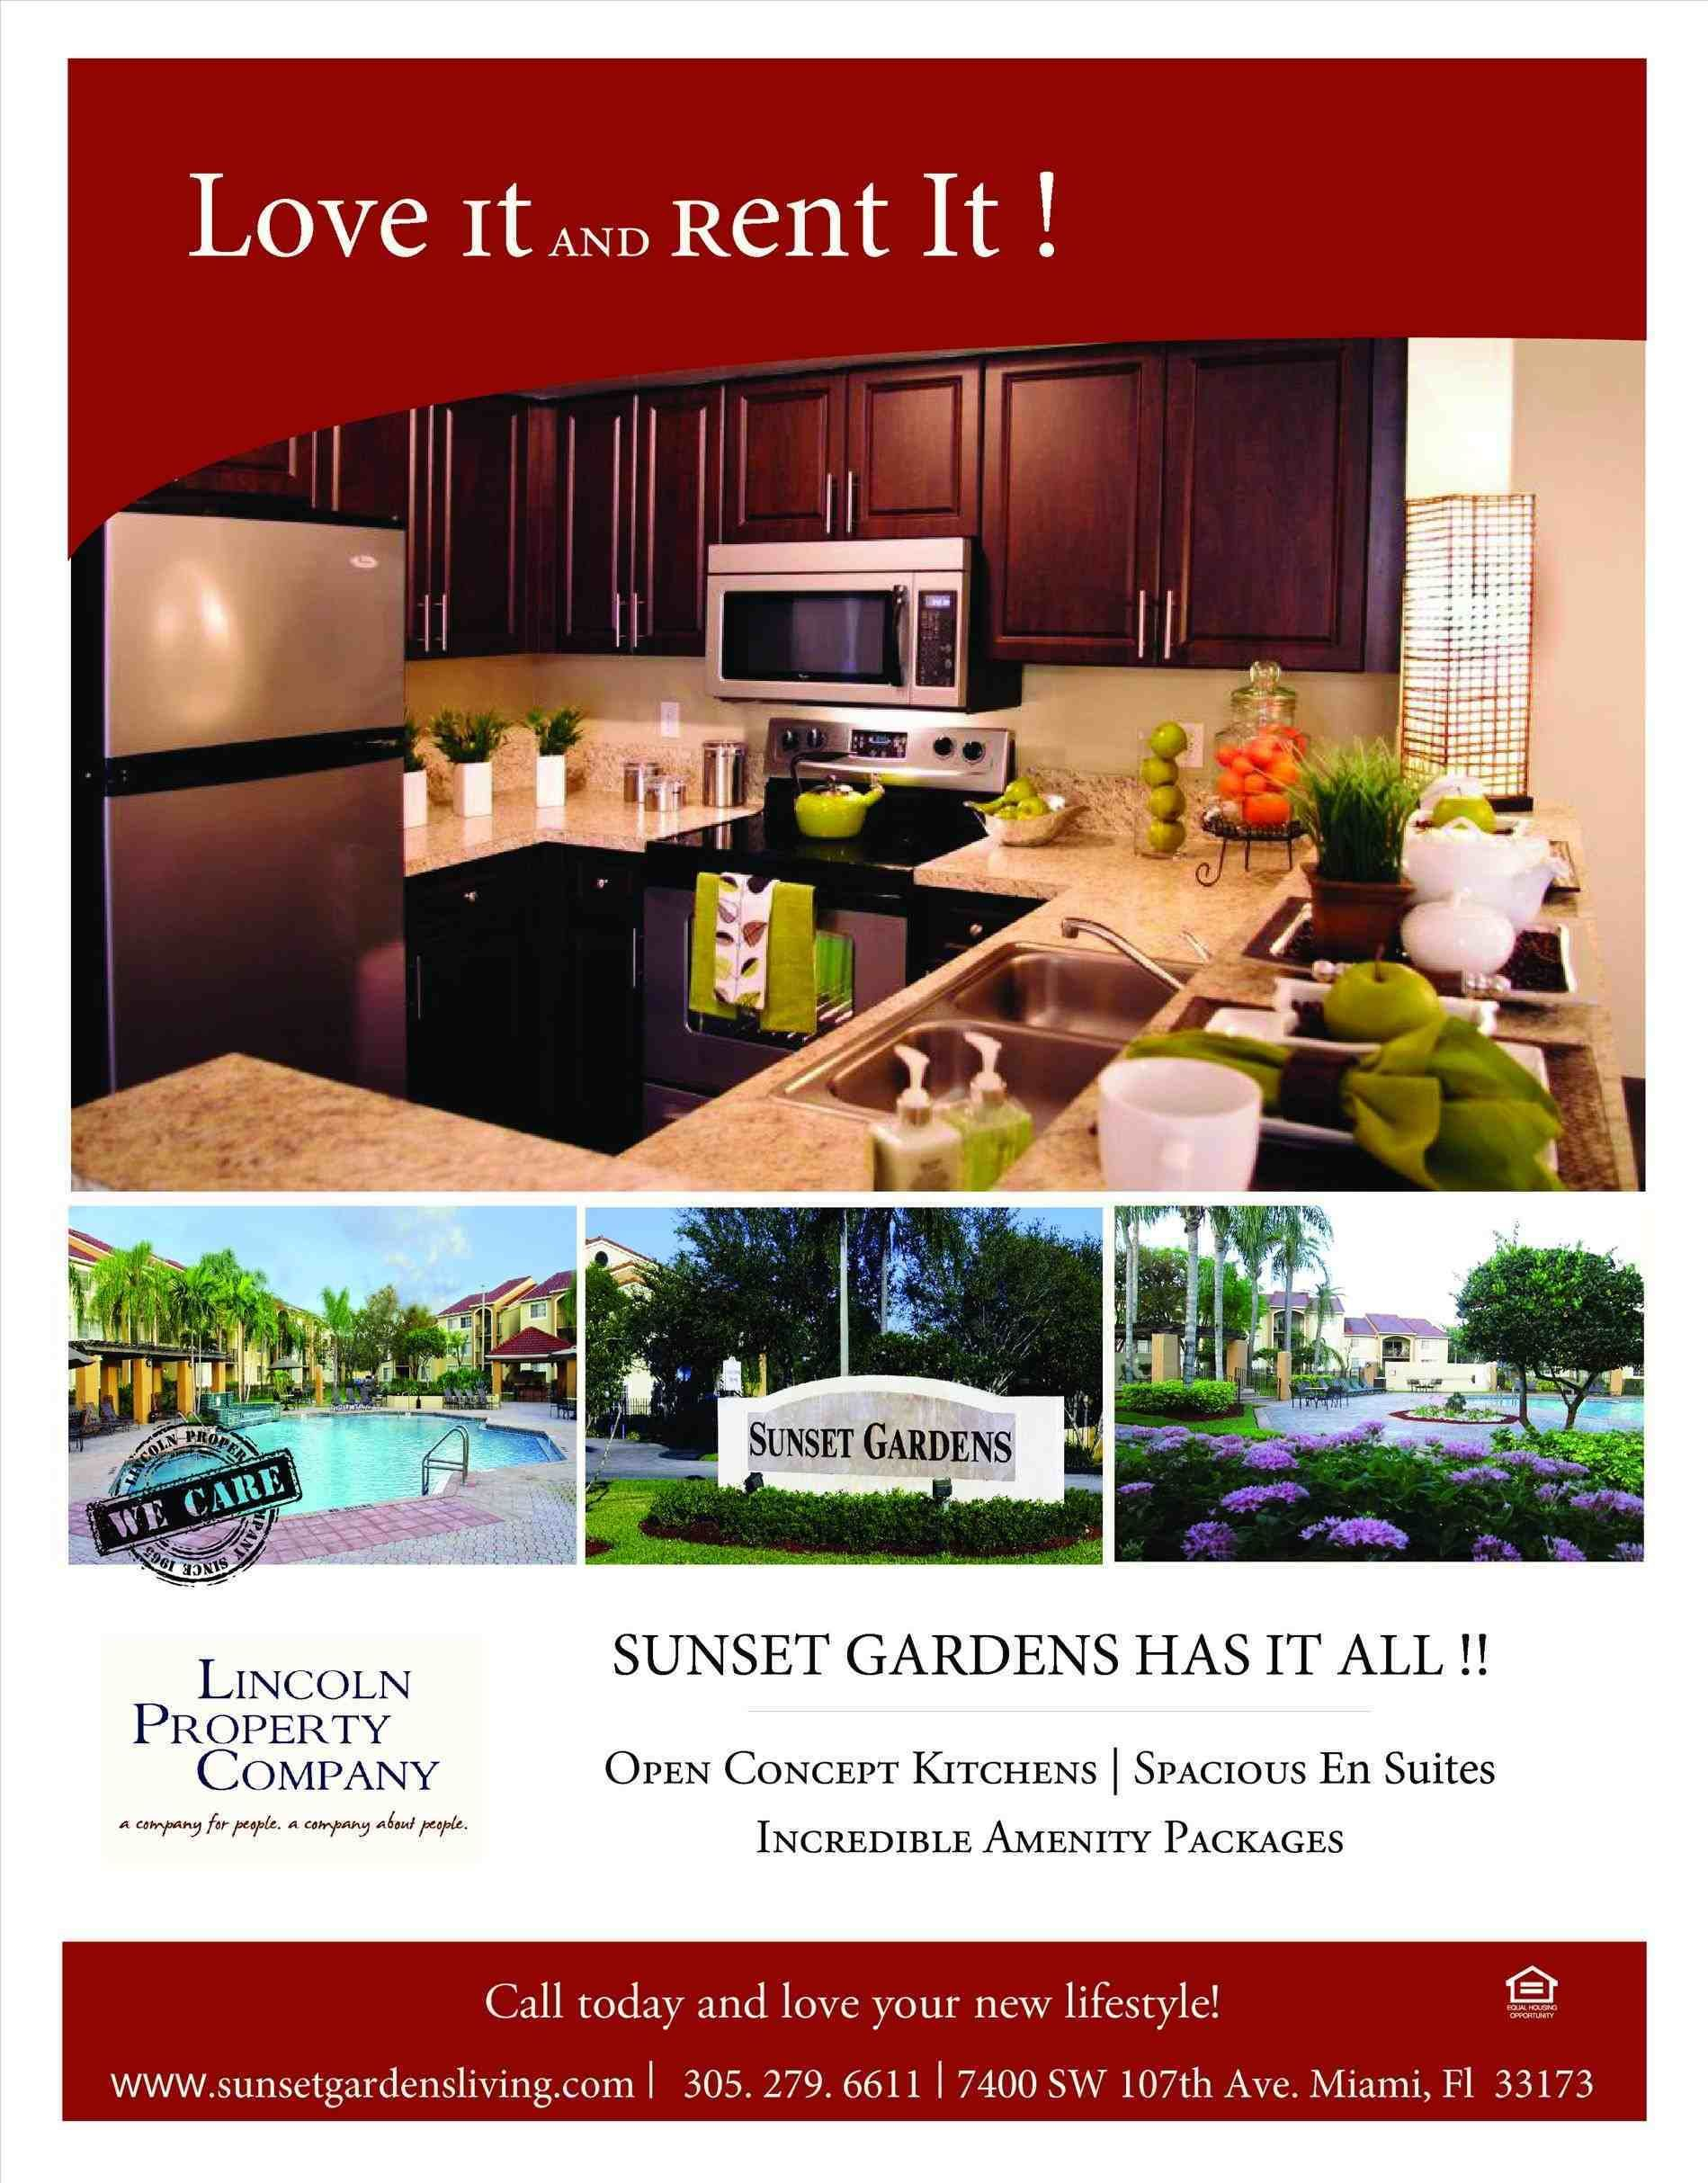 Apartment Rental Flyer Template With Images Rental Apartments